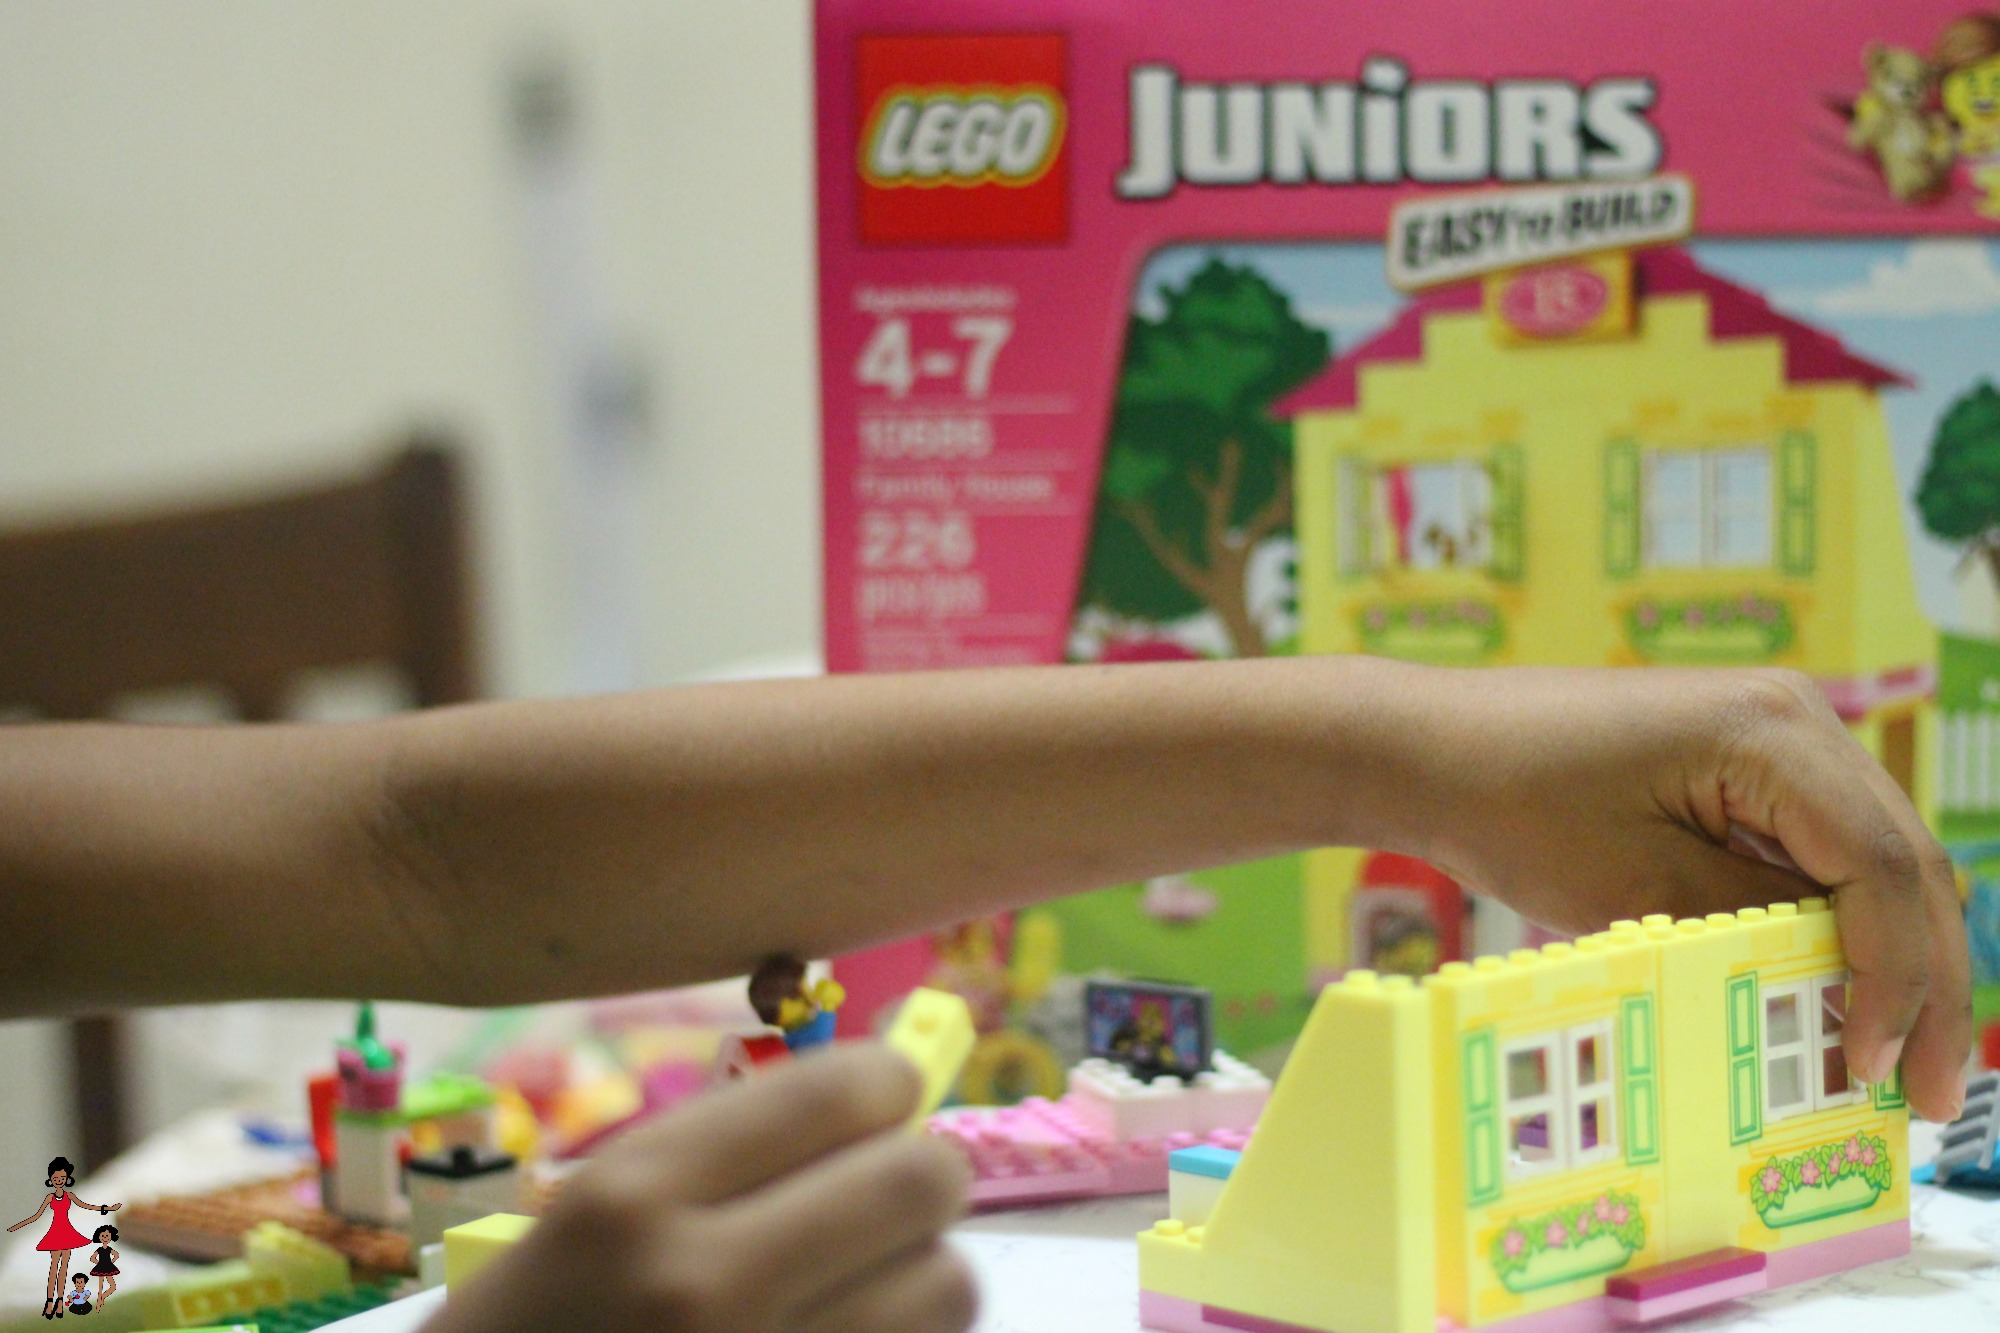 lego-juniors-celebrate-small-wins